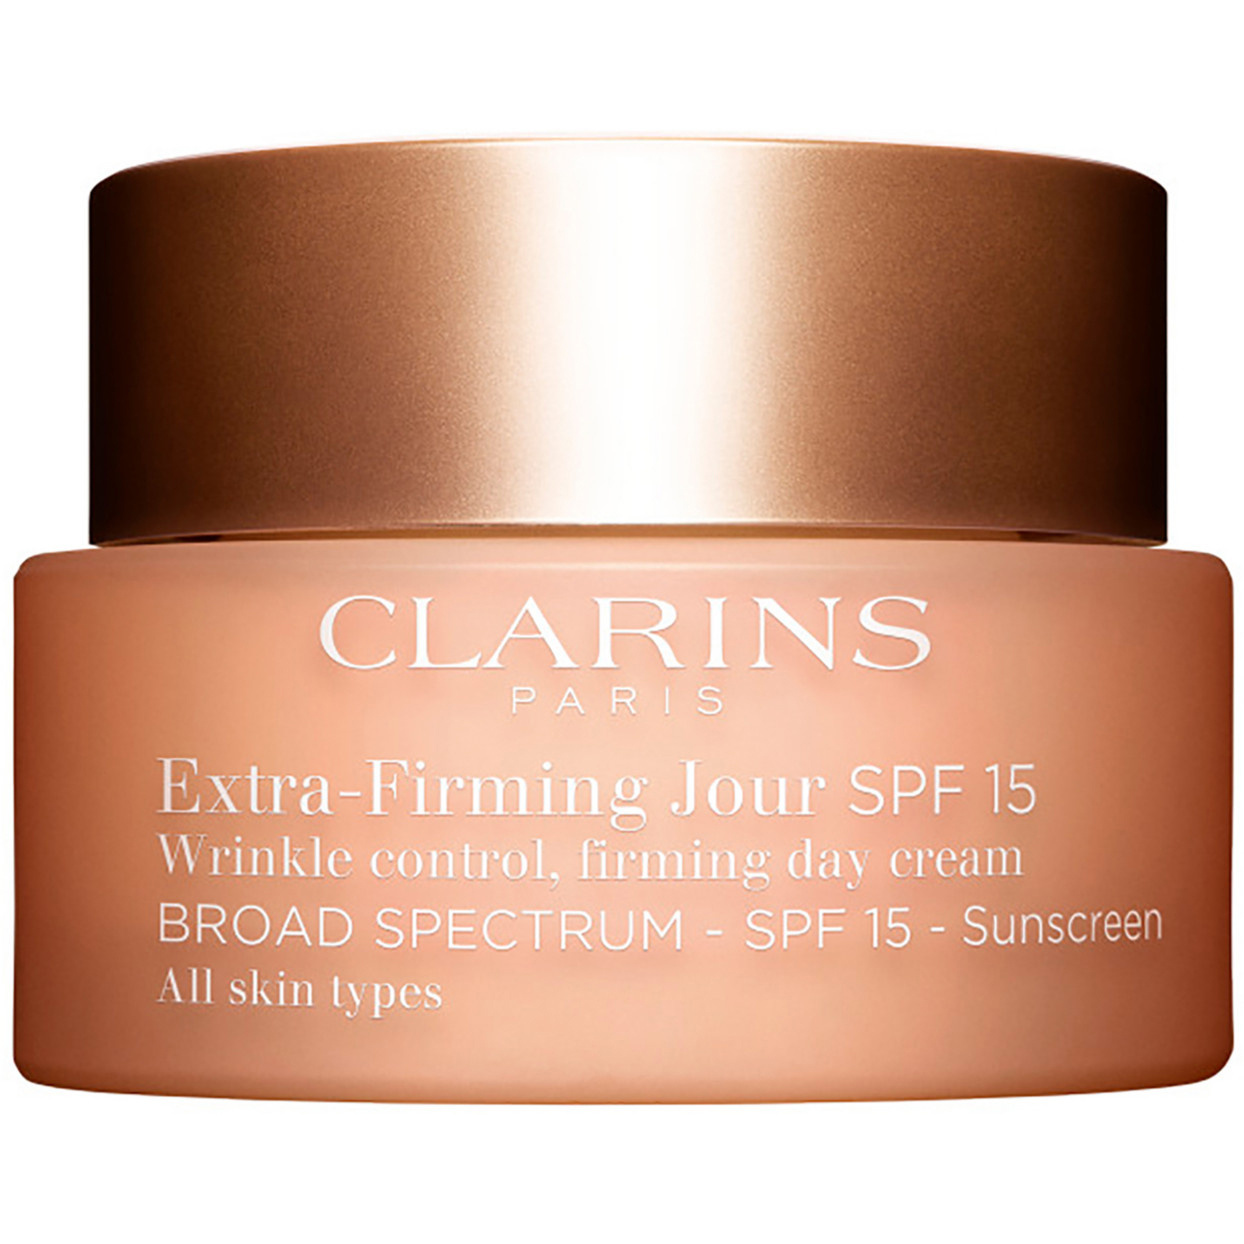 Clarins Extra-Firming Wrinkle Control Firming Day Cream